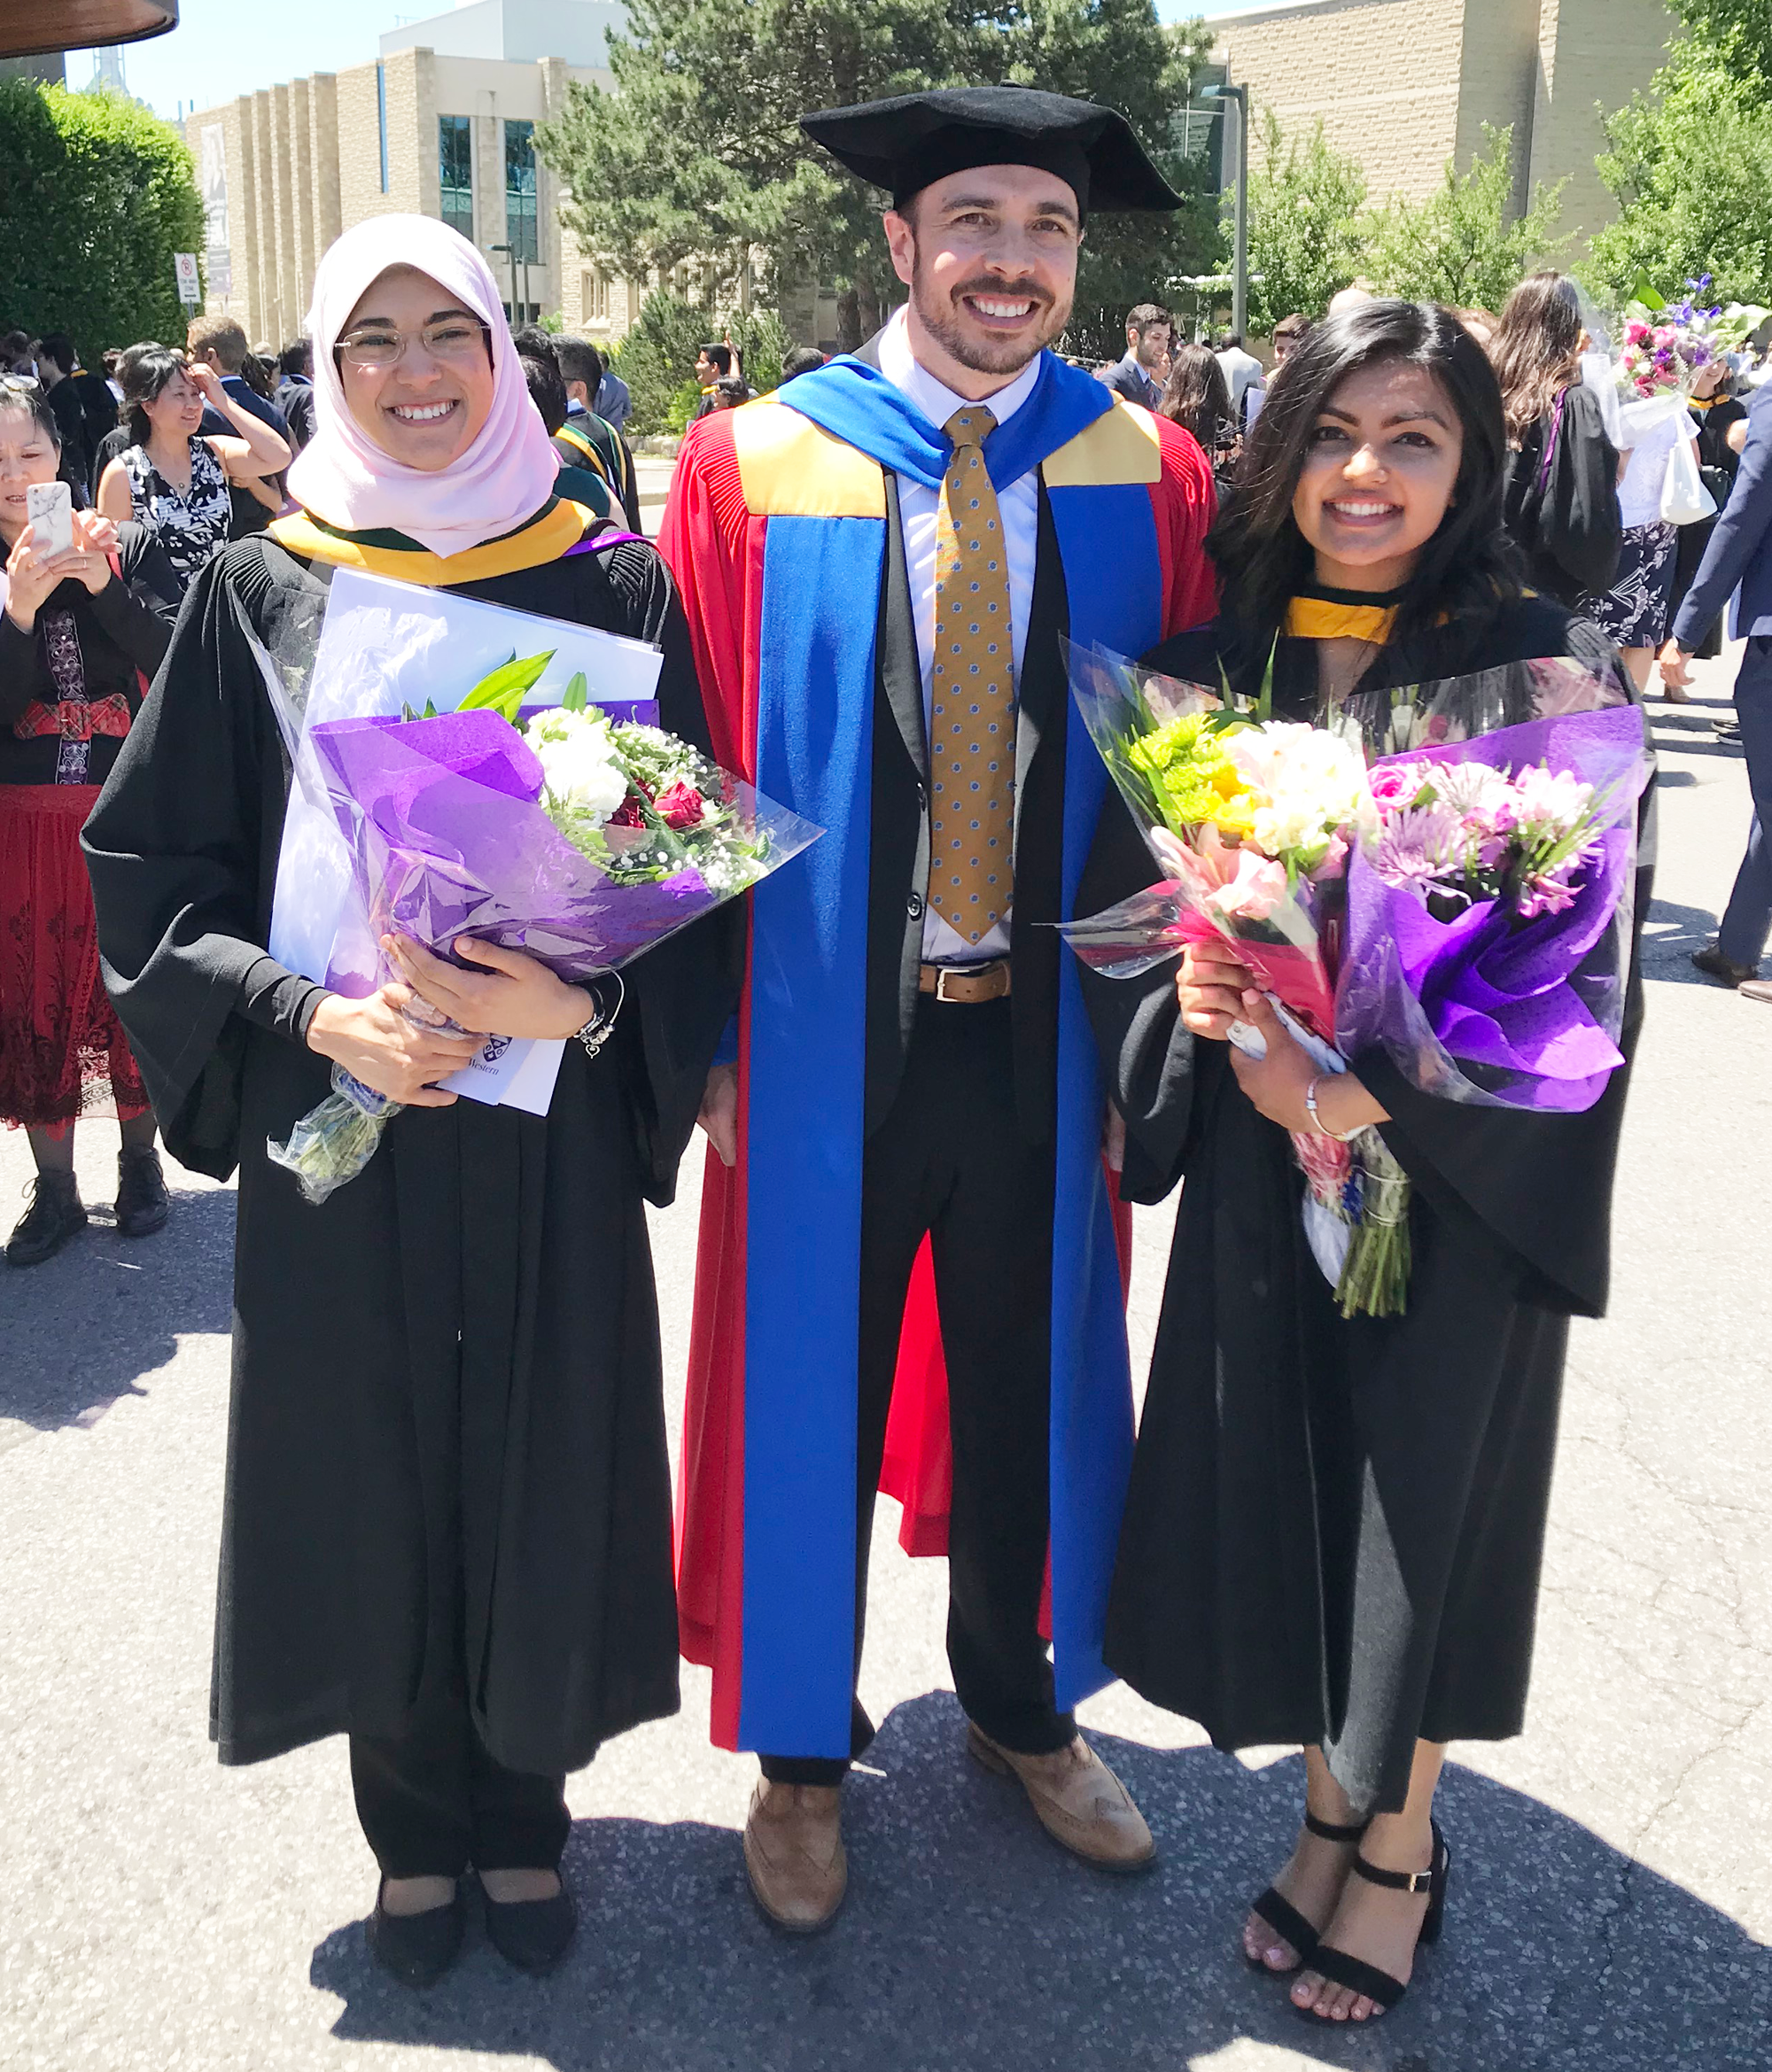 Yomna, Steve, and Maitri in their wizarding robes for convocation.